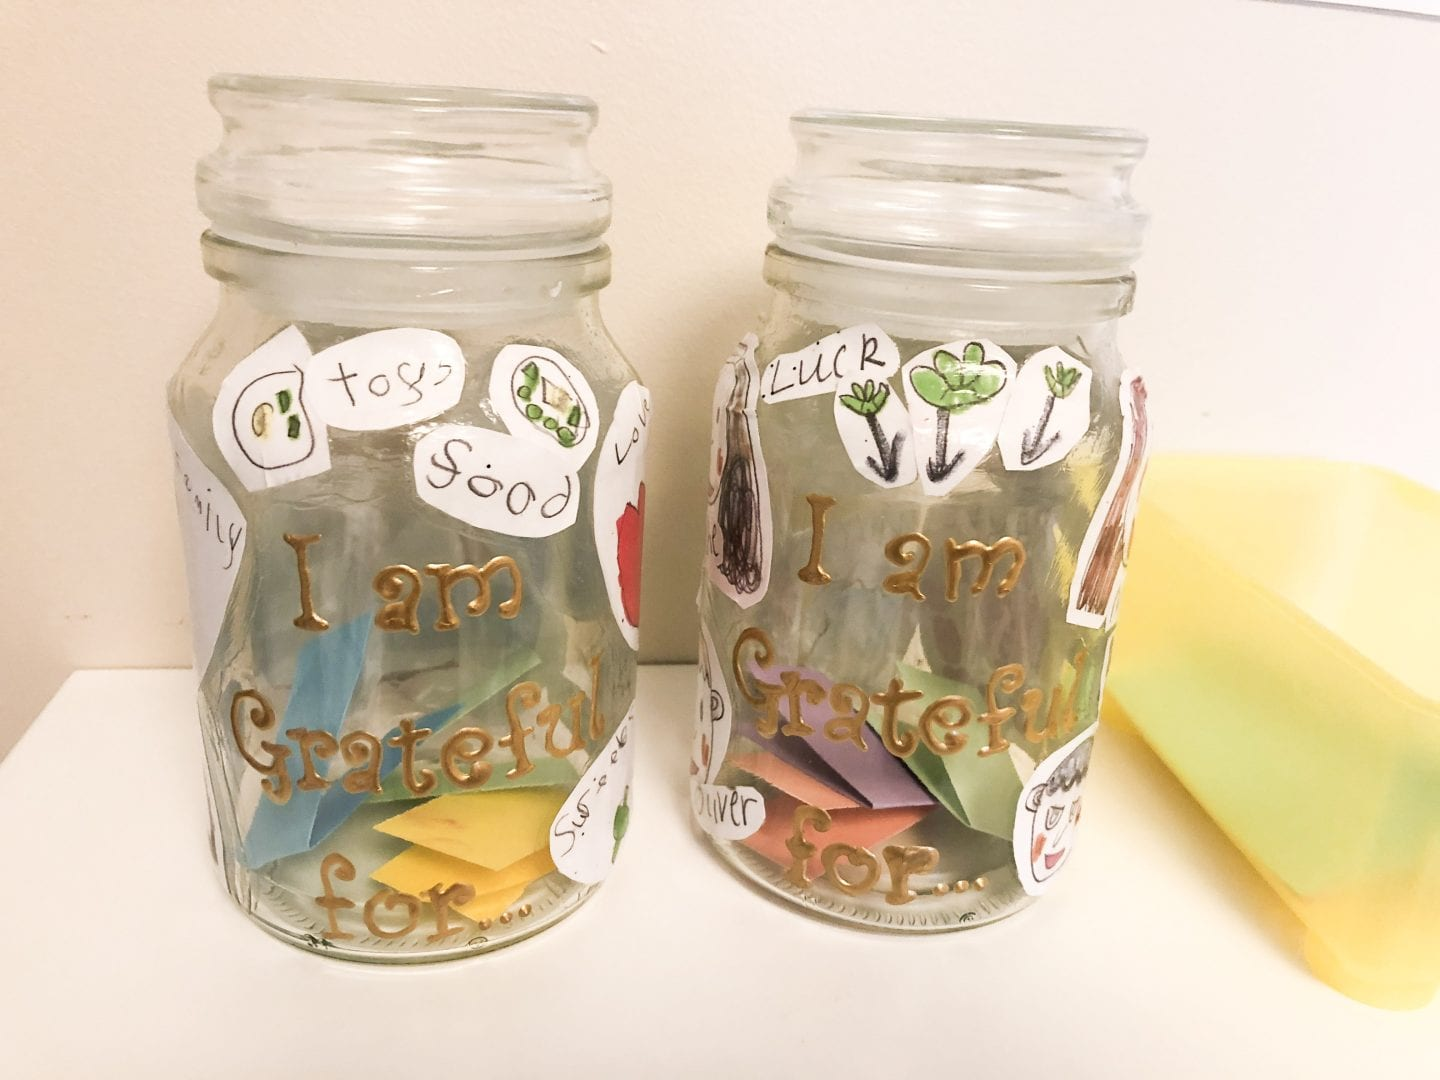 The finsihed gratitude jars